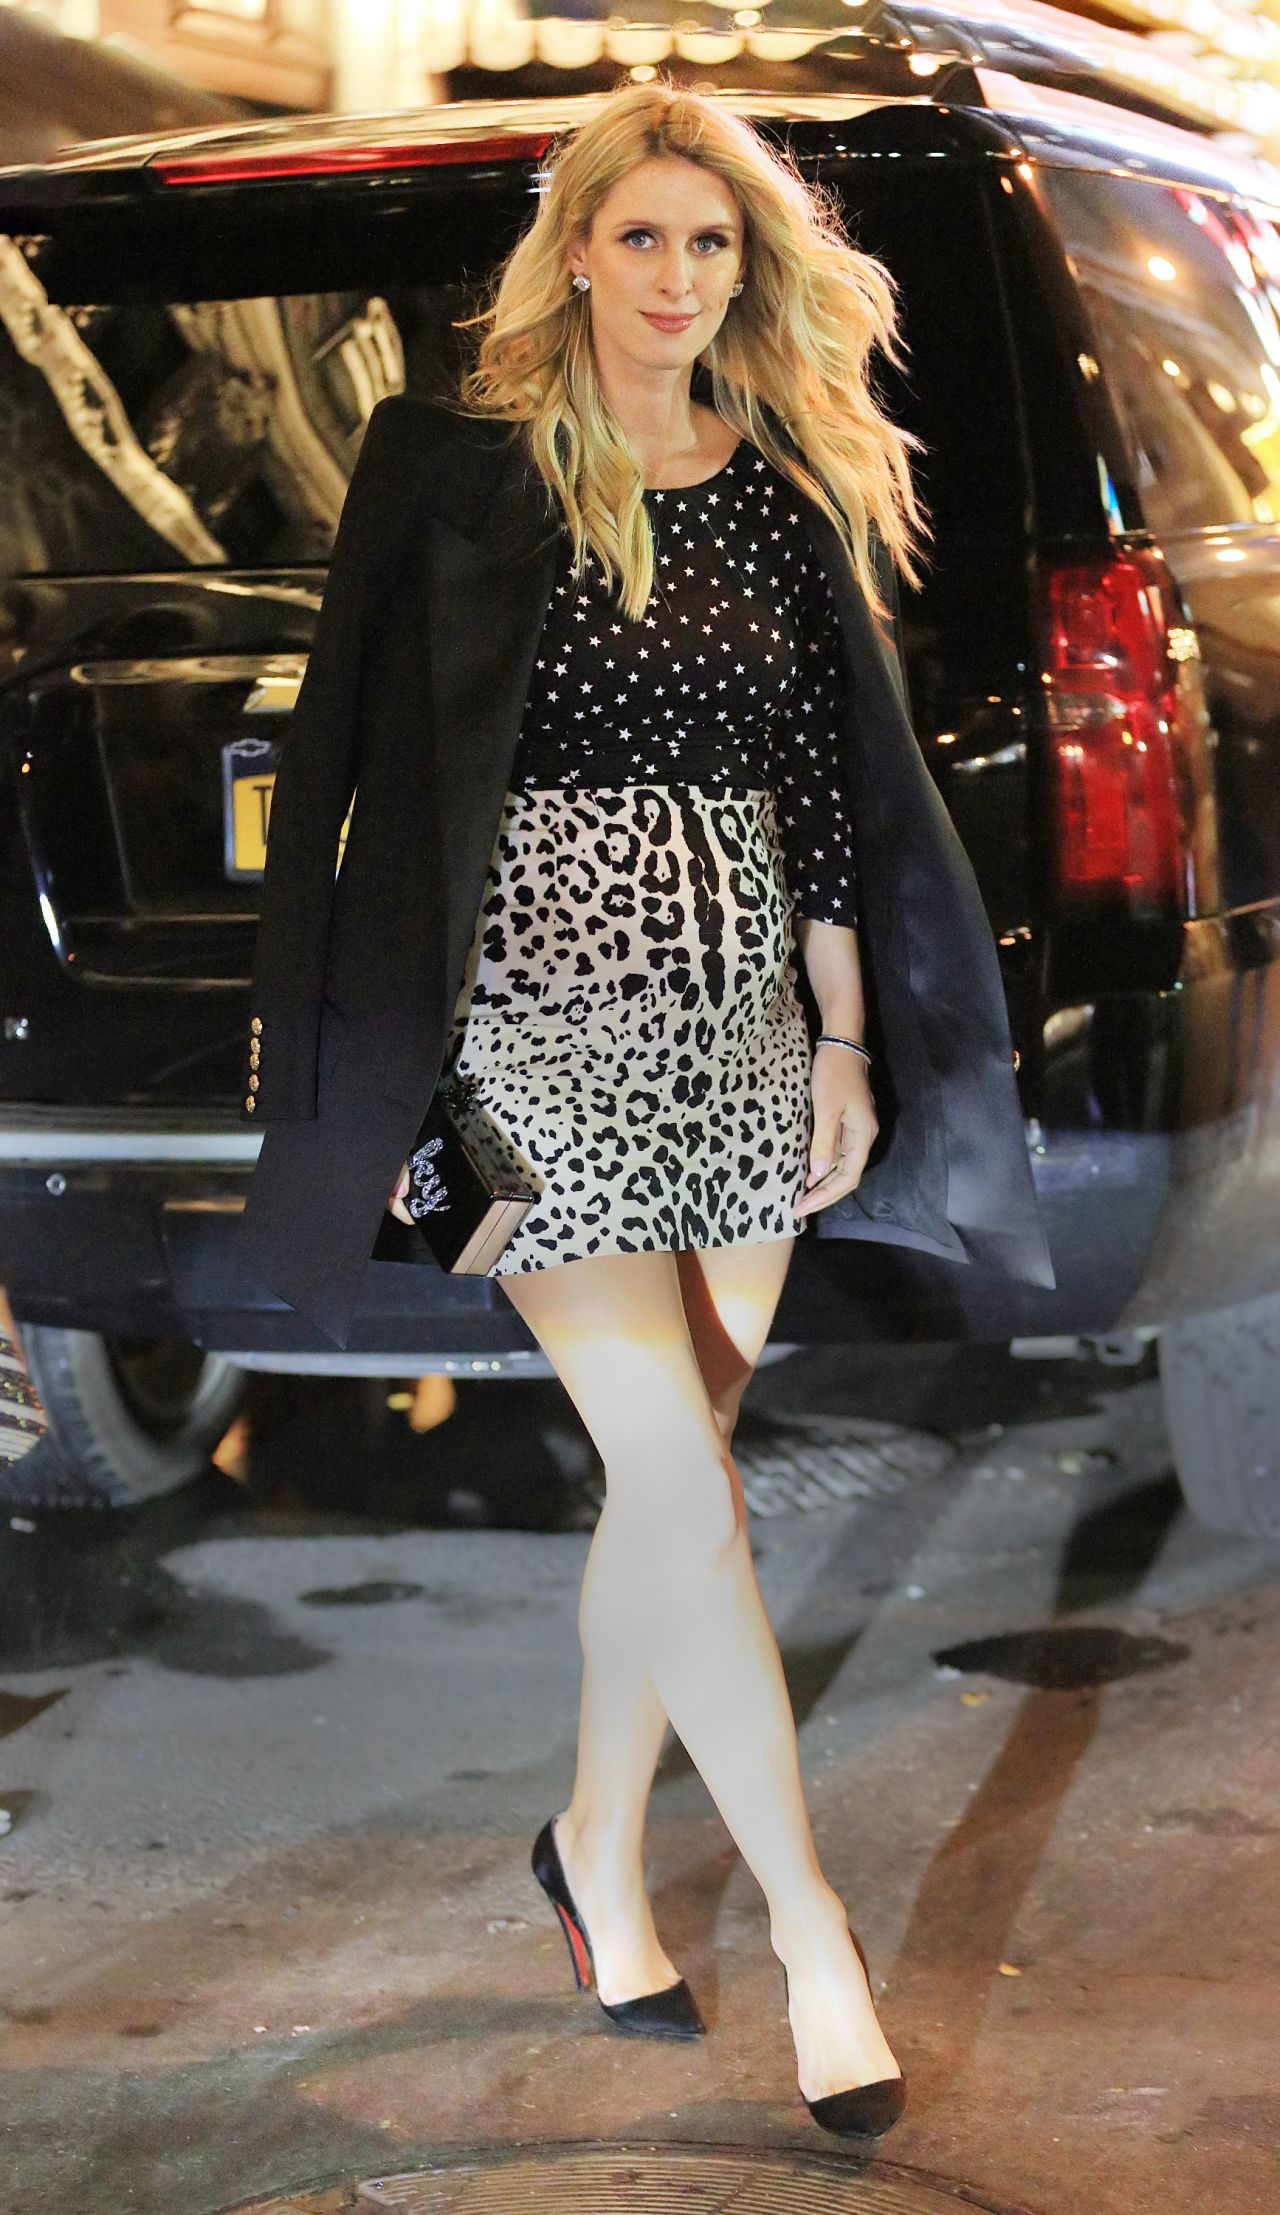 Nicky Hilton and Paris Hilton at Naomi Campbells Party in